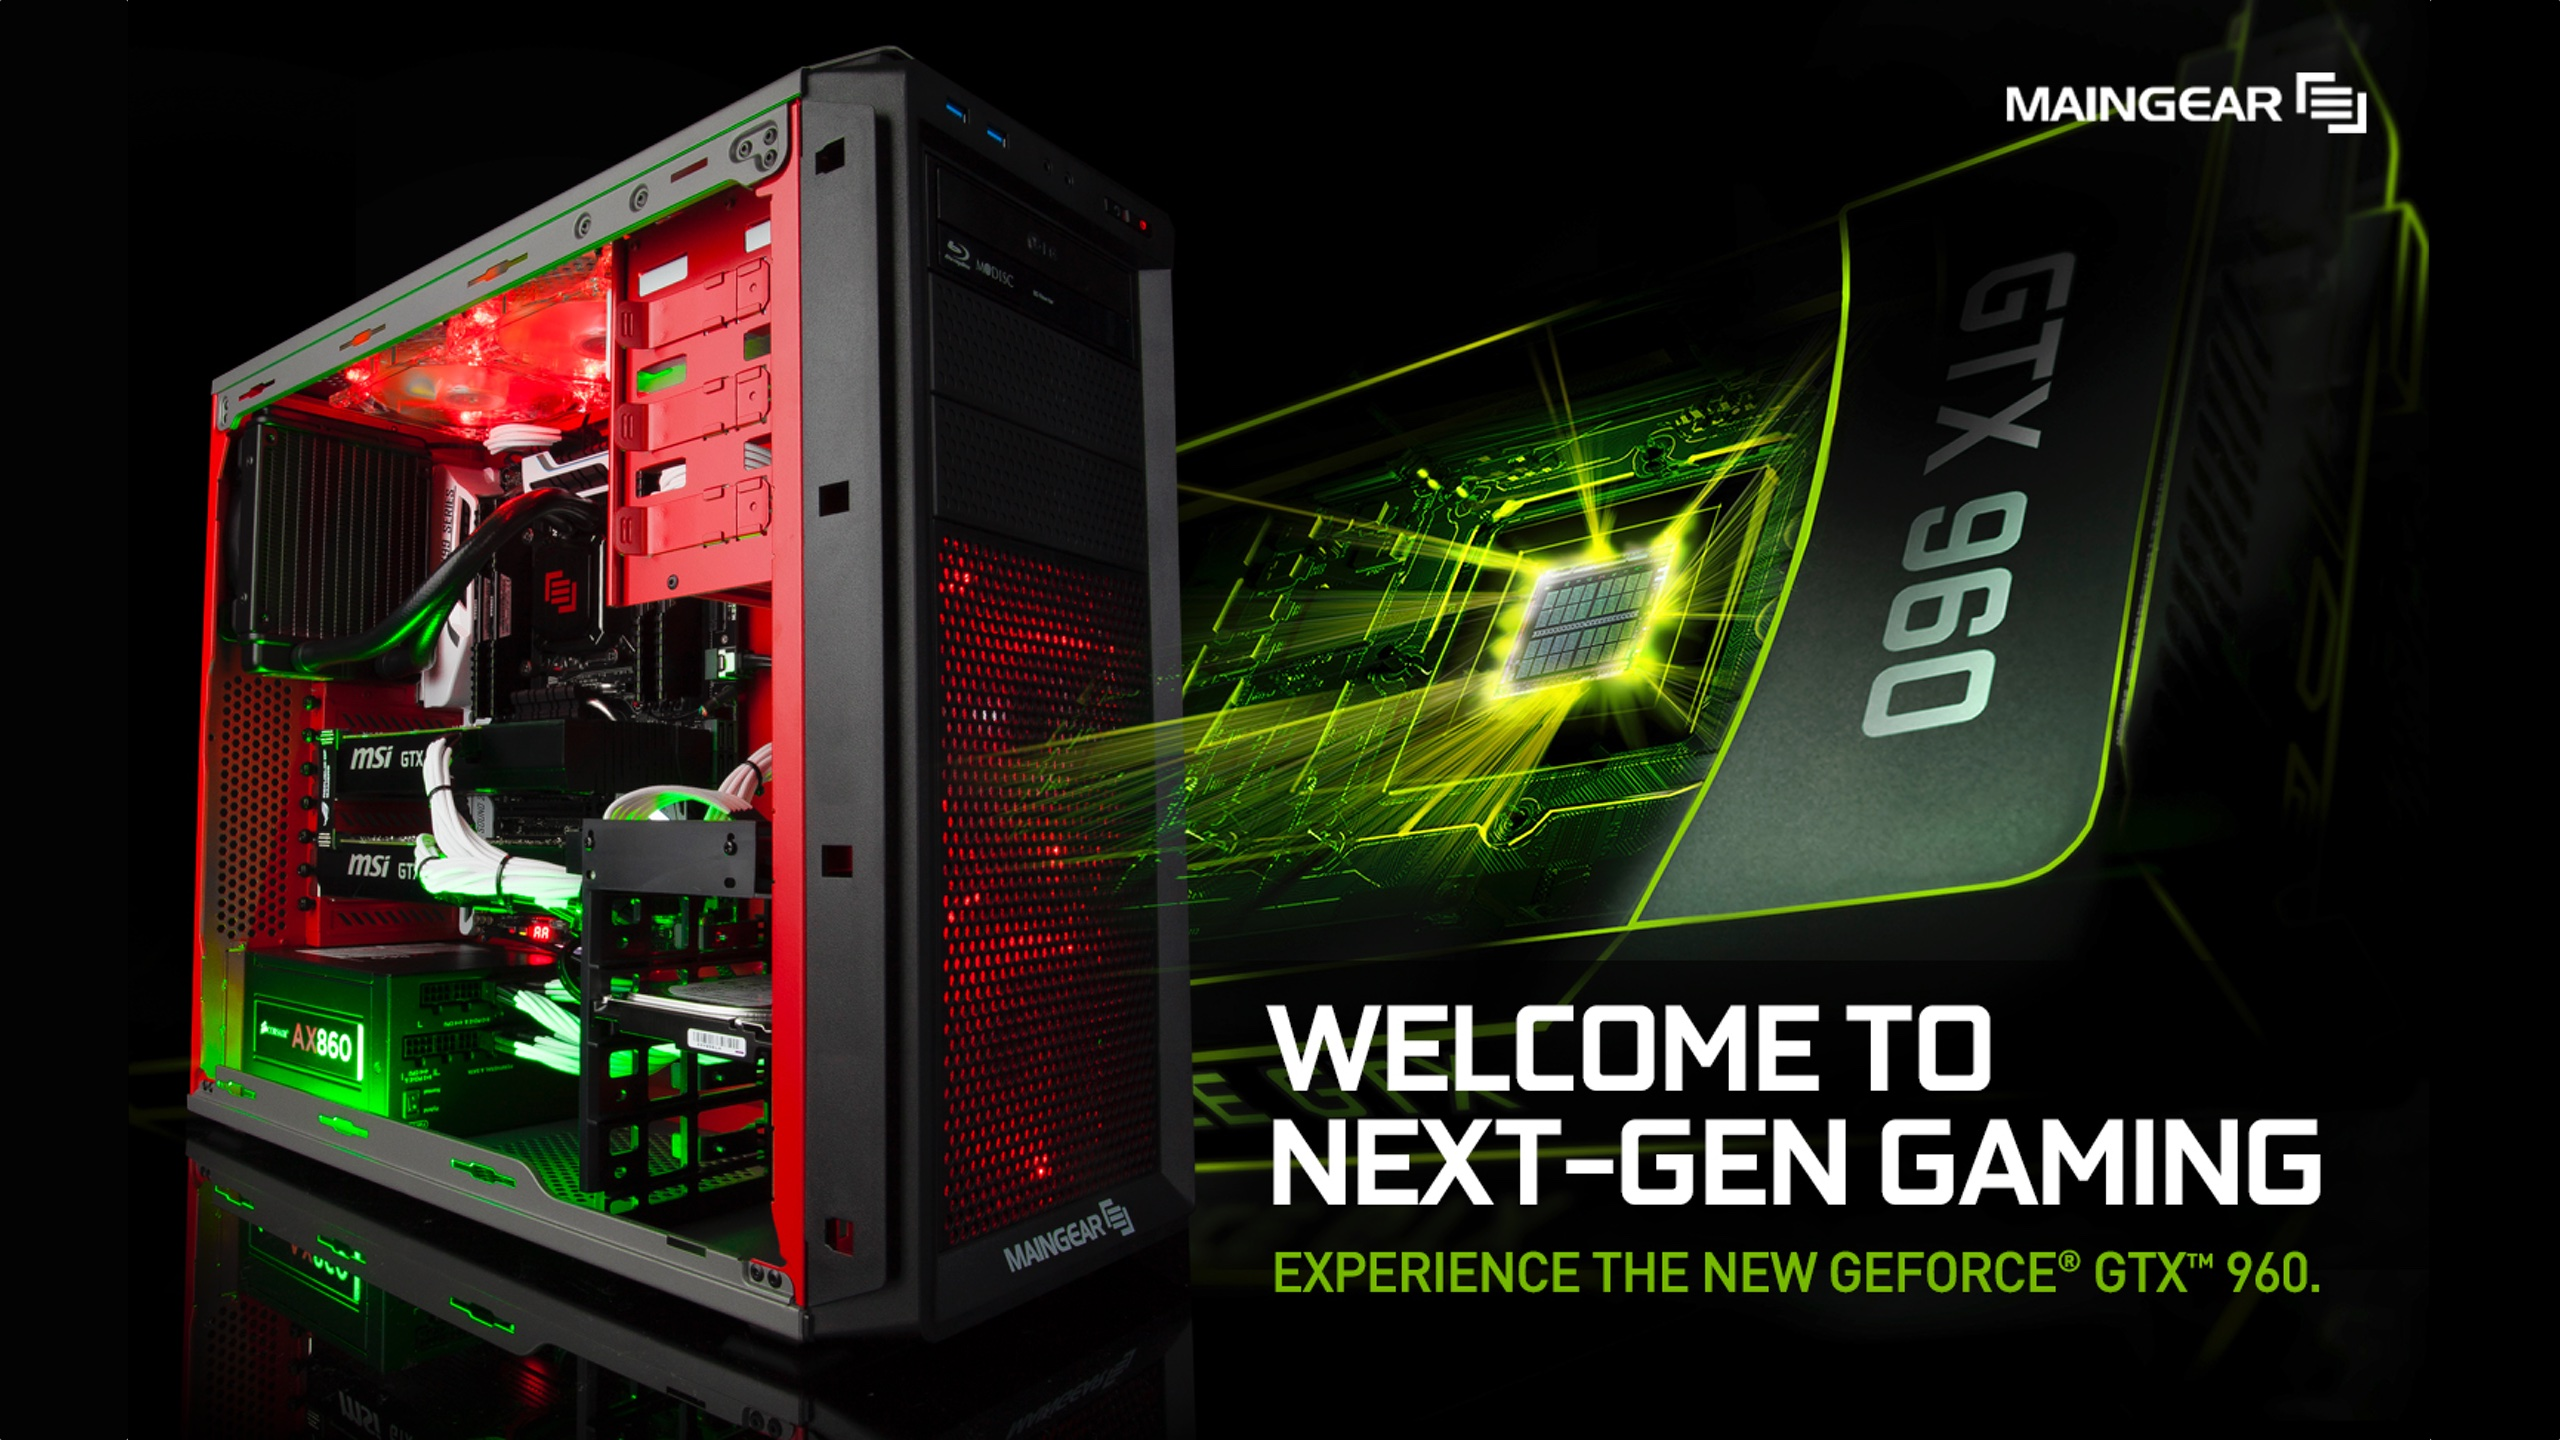 maingear-nvidia-geforce-gtx-960